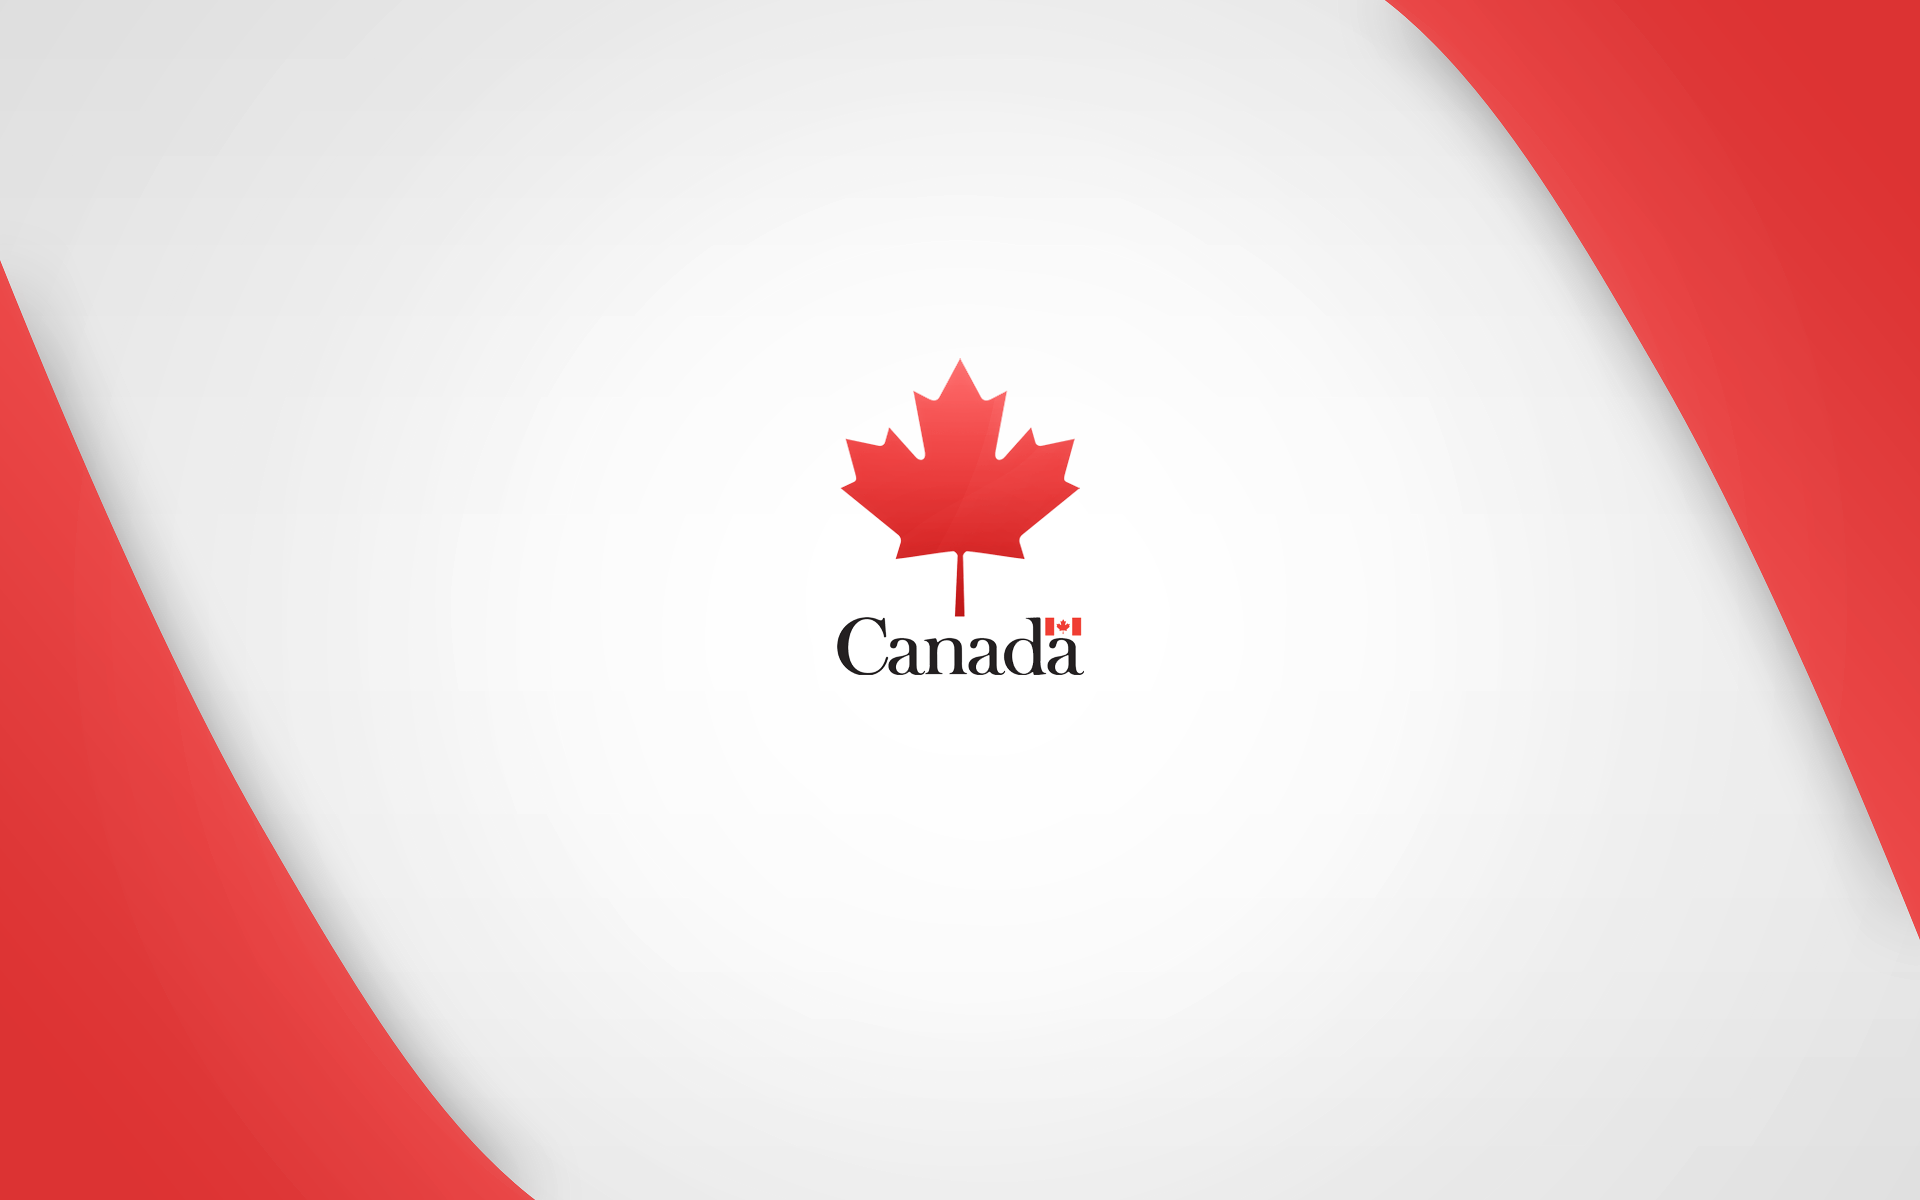 Flag of canada full hd wallpaper and background image - Canada flag wallpaper hd for iphone ...